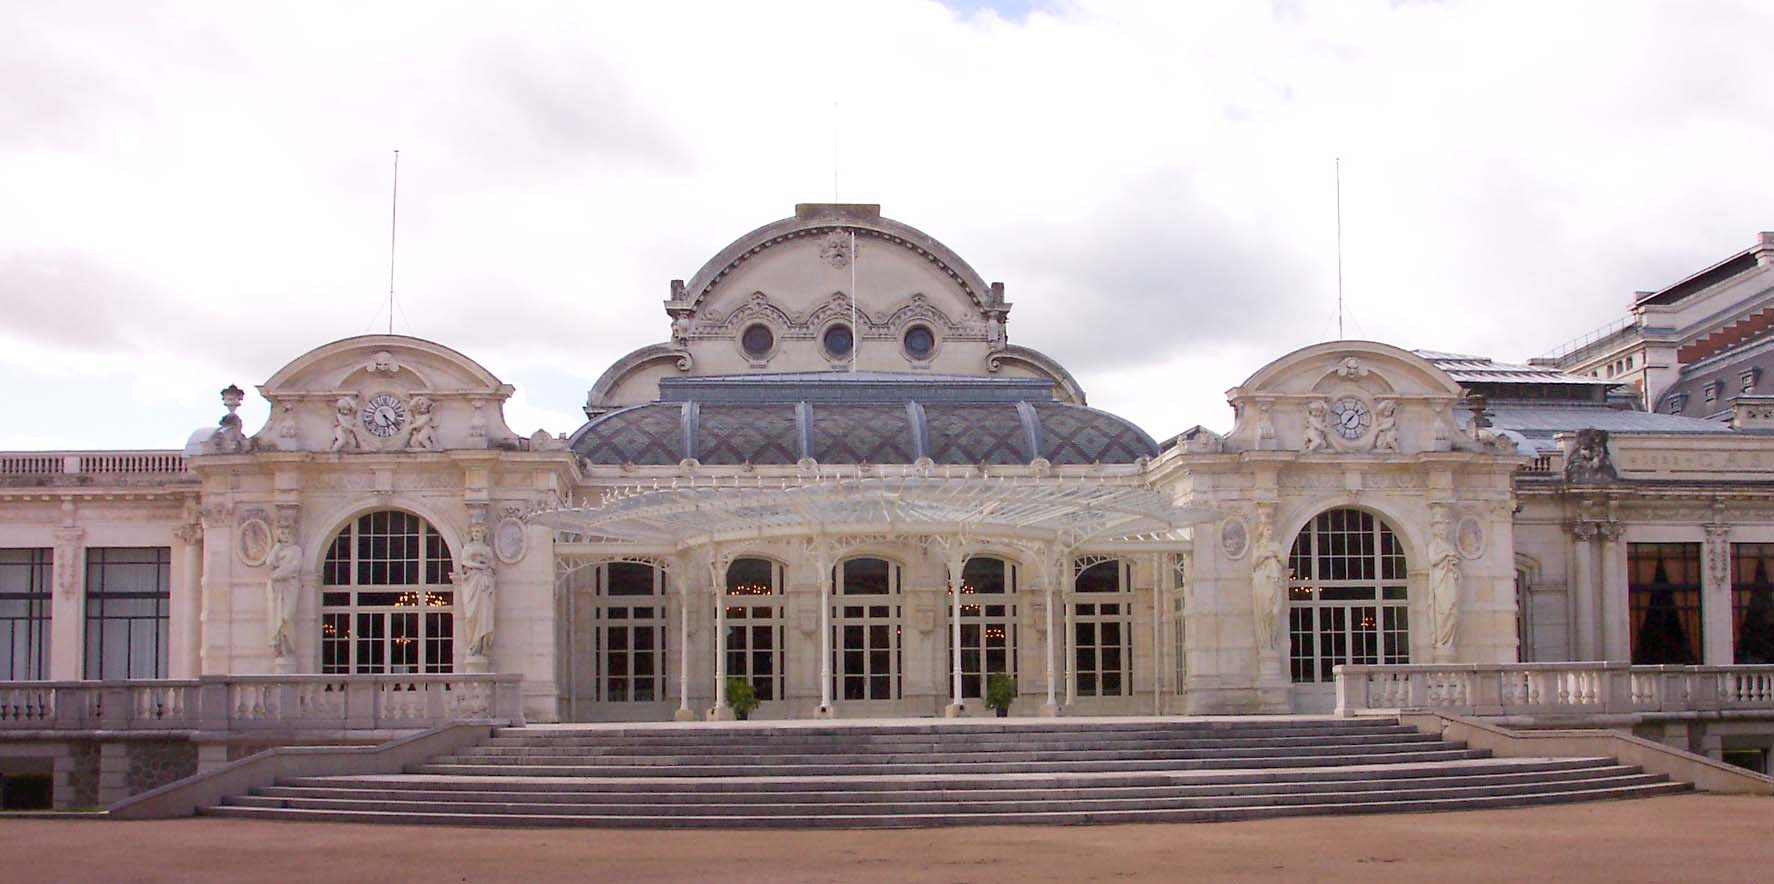 http://upload.wikimedia.org/wikipedia/commons/a/a5/Palais_des_Congr%C3%A8s_Vichy.jpg